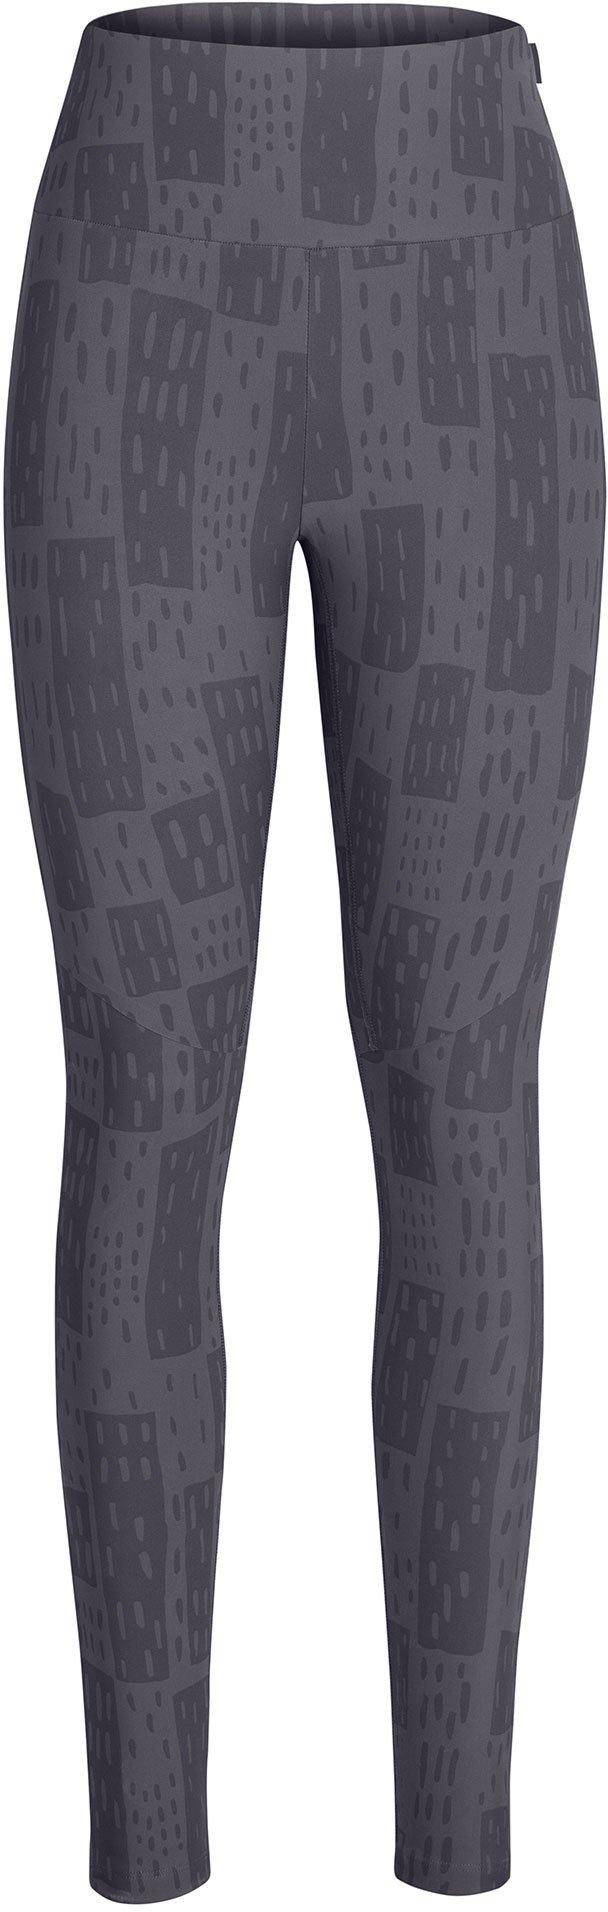 Rapha Tights - Dame | Trousers